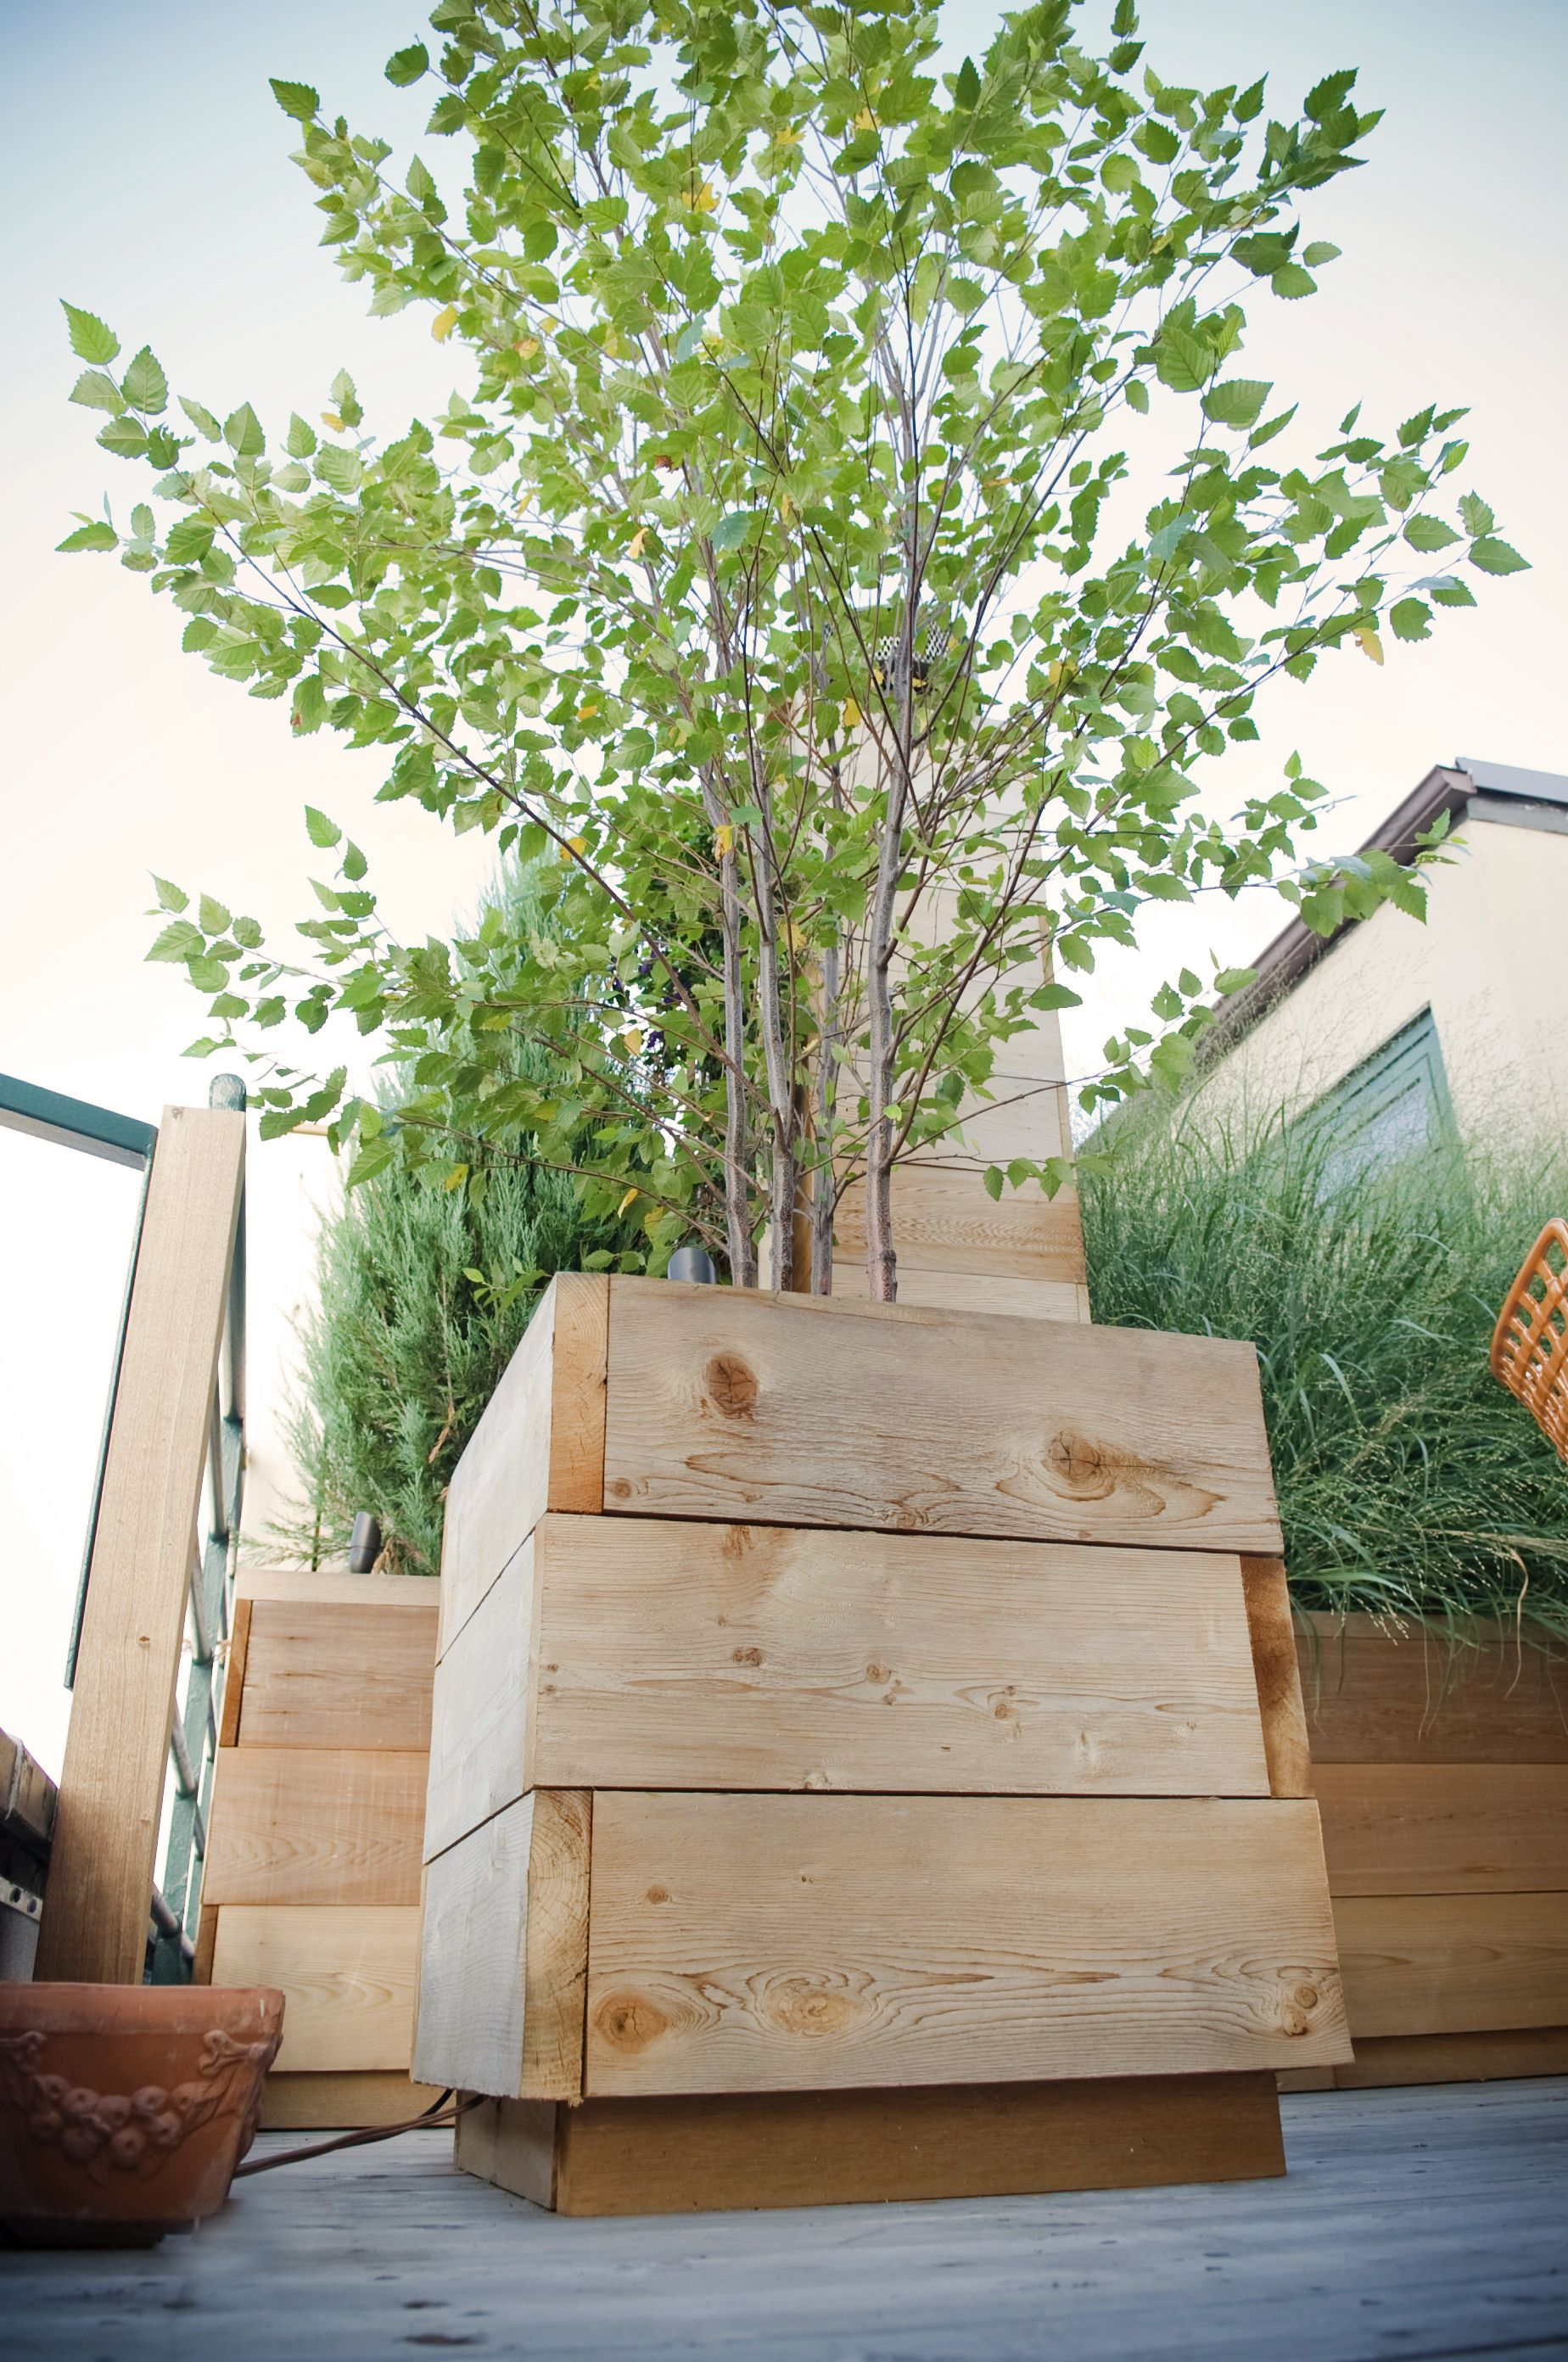 Roof Deck Planters Outdoor Furniture Birch Trees